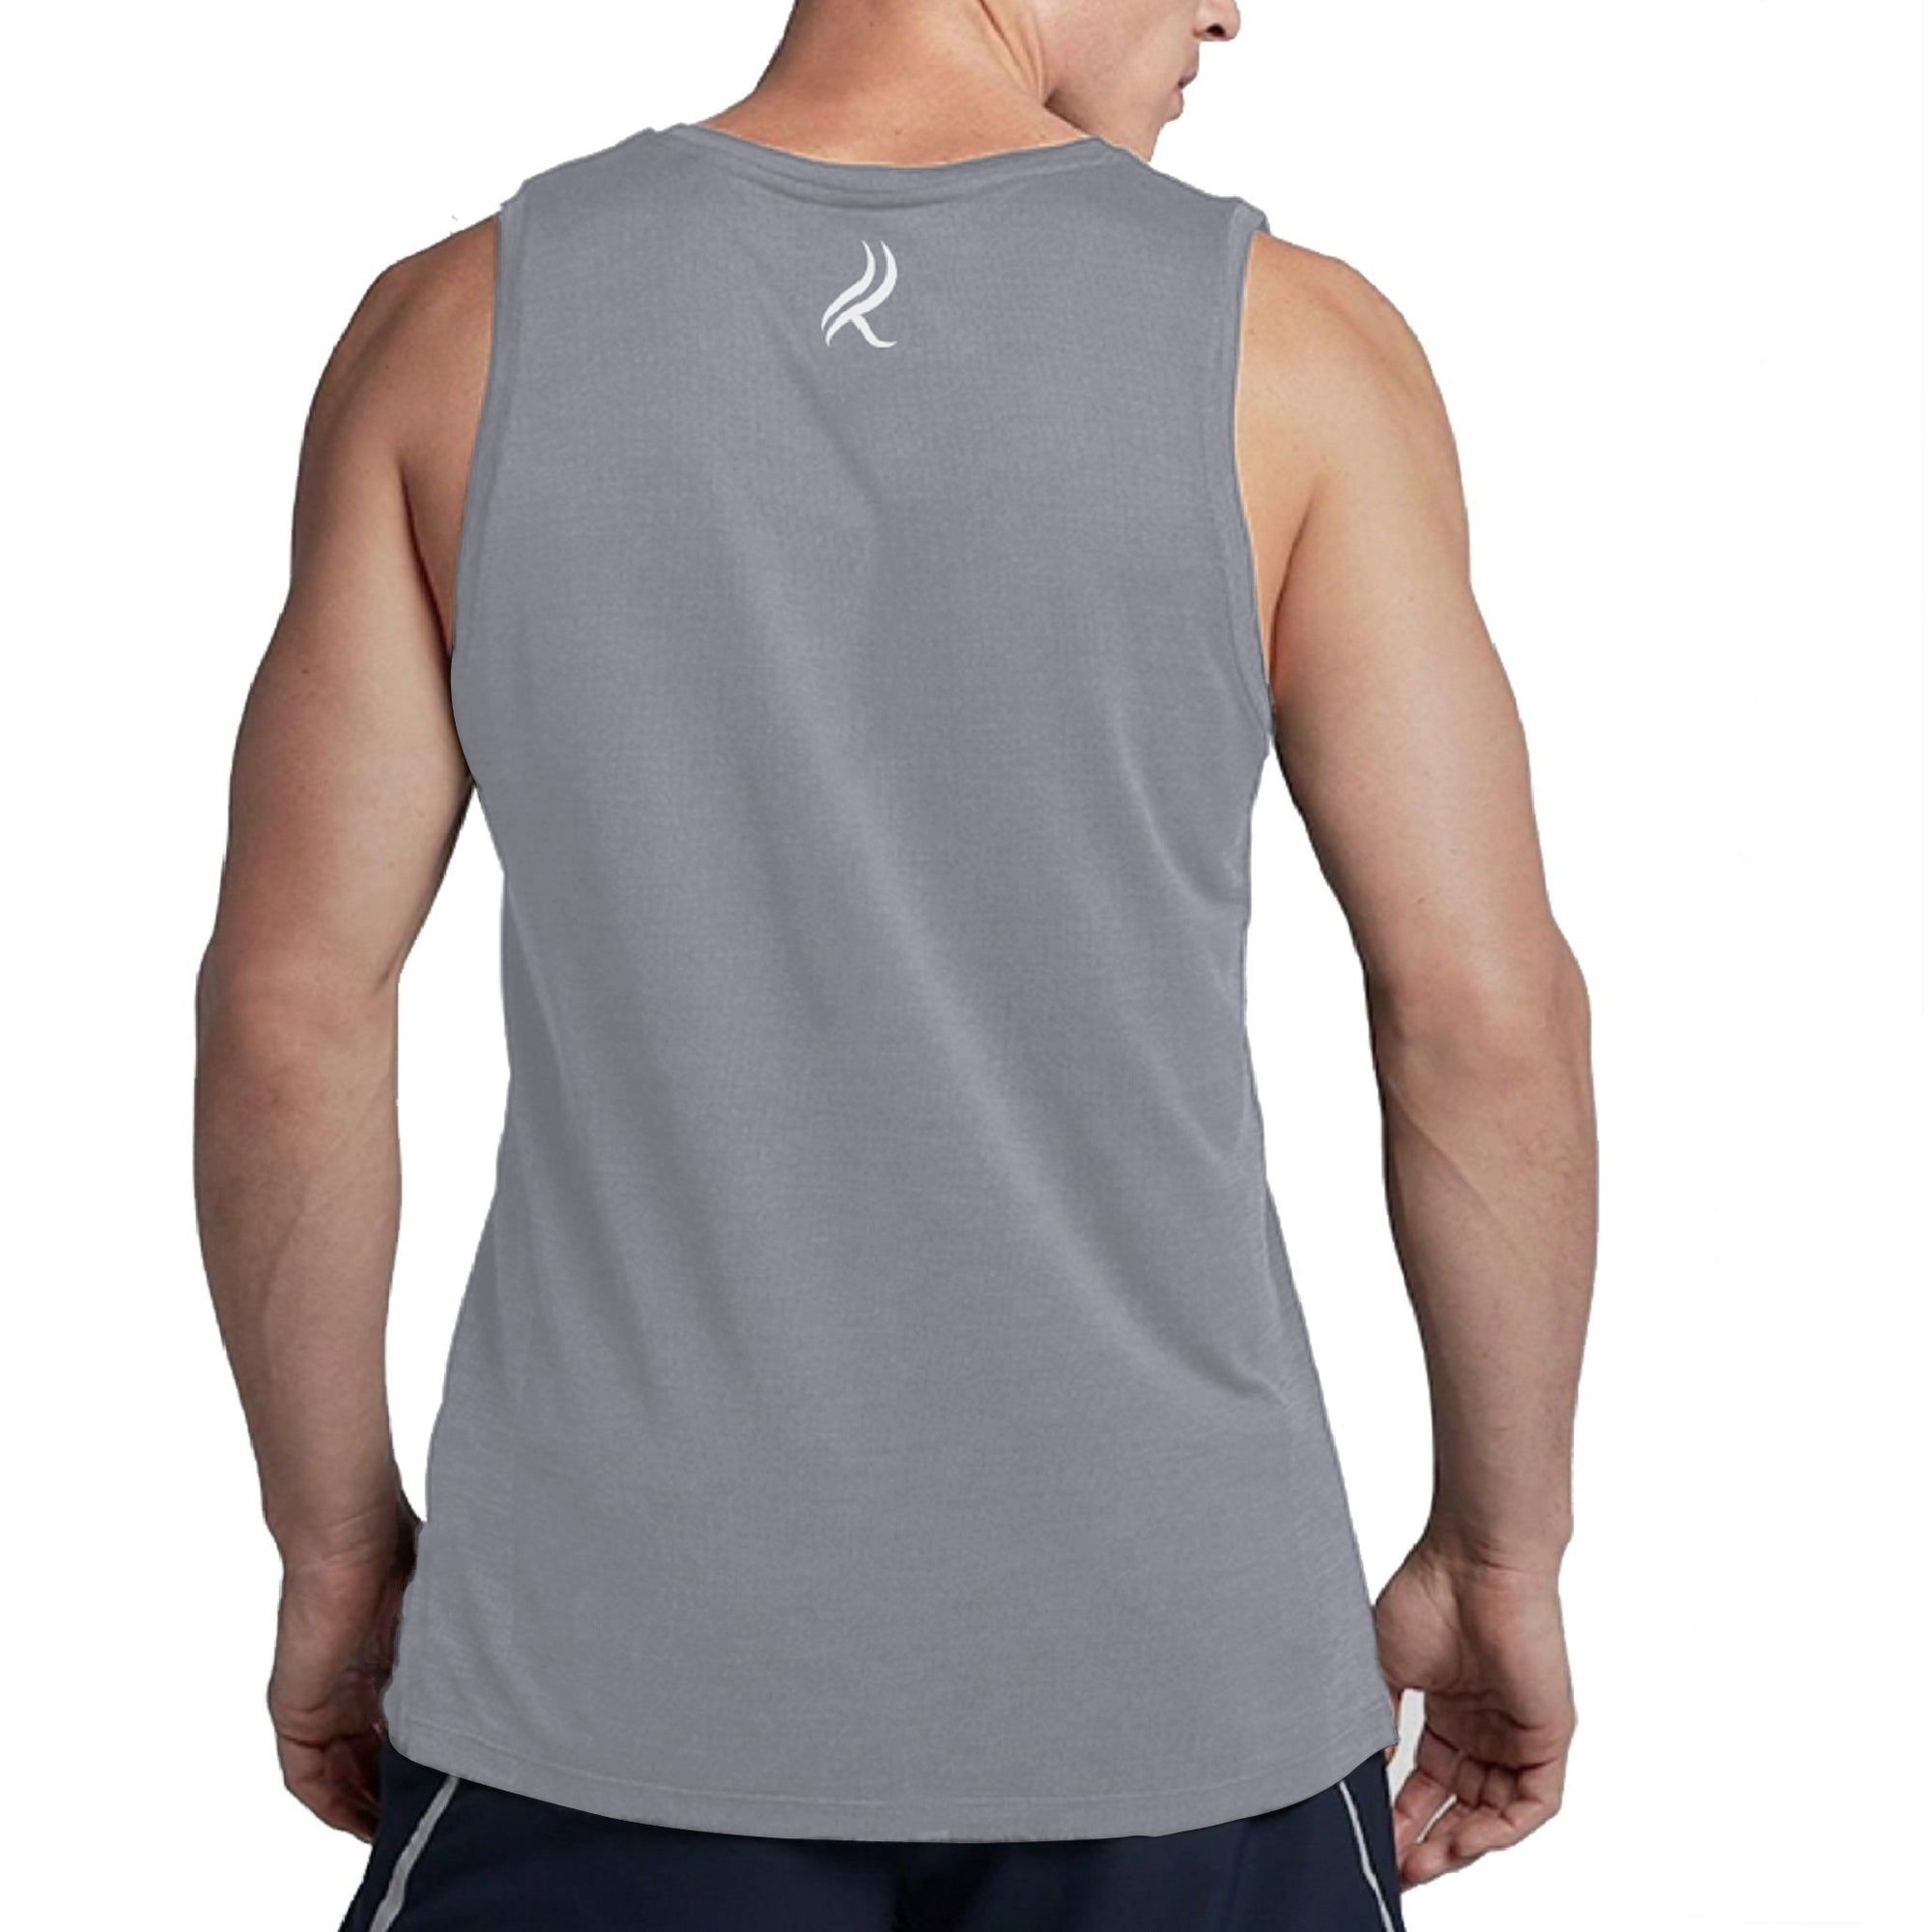 Kobrelms-Men Tank Tops and Shirts-Men's Active Tank Top-Grey / S